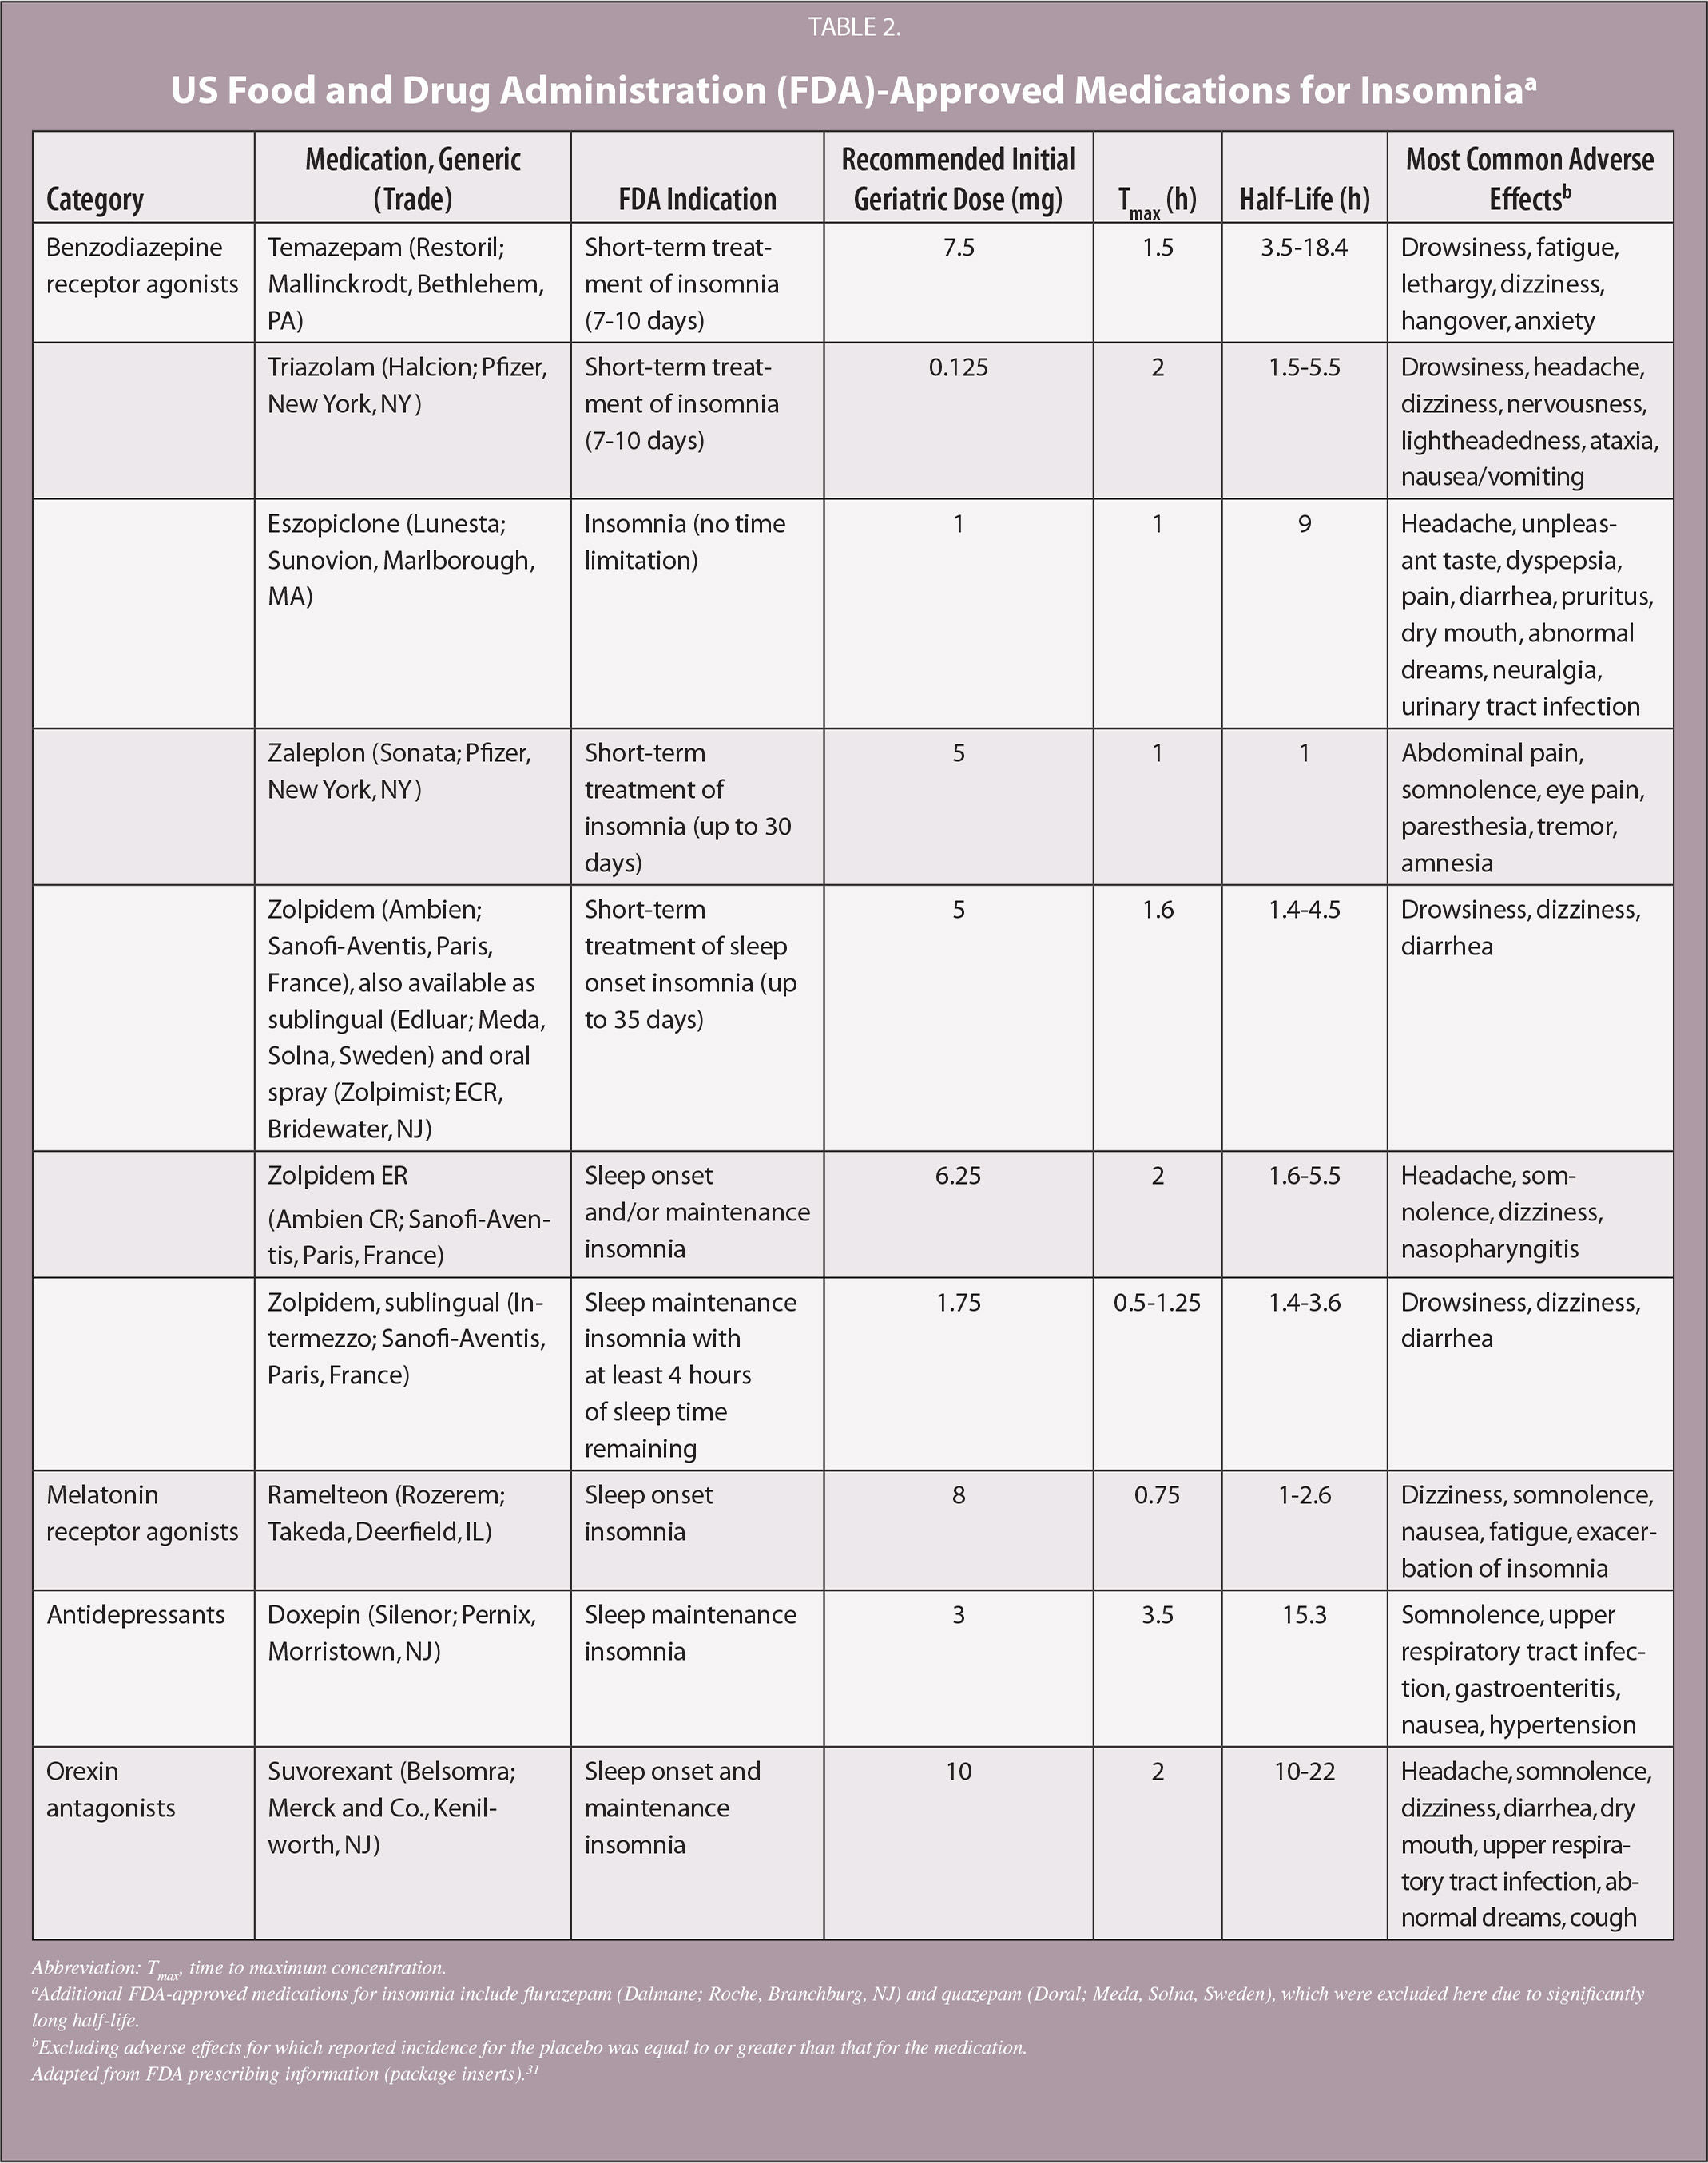 US Food and Drug Administration (FDA)-Approved Medications for Insomniaa